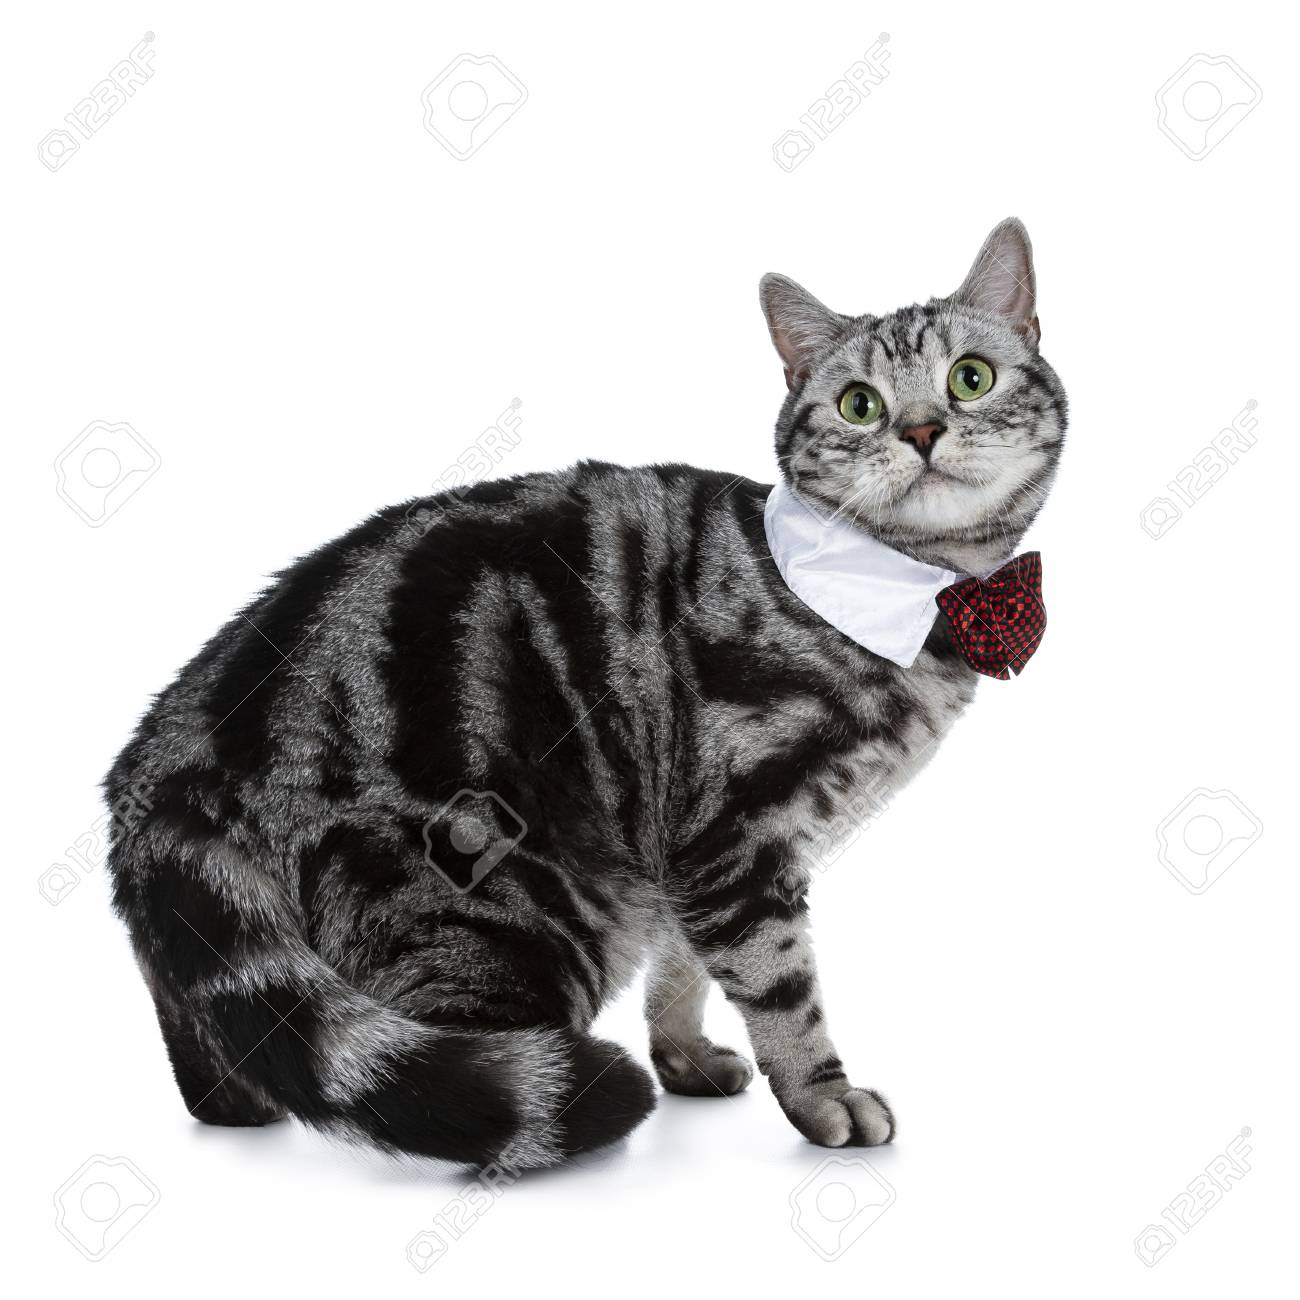 Handsome Black Silver Tabby British Shorthair Cat Walking On Stock Photo Picture And Royalty Free Image Image 103821962